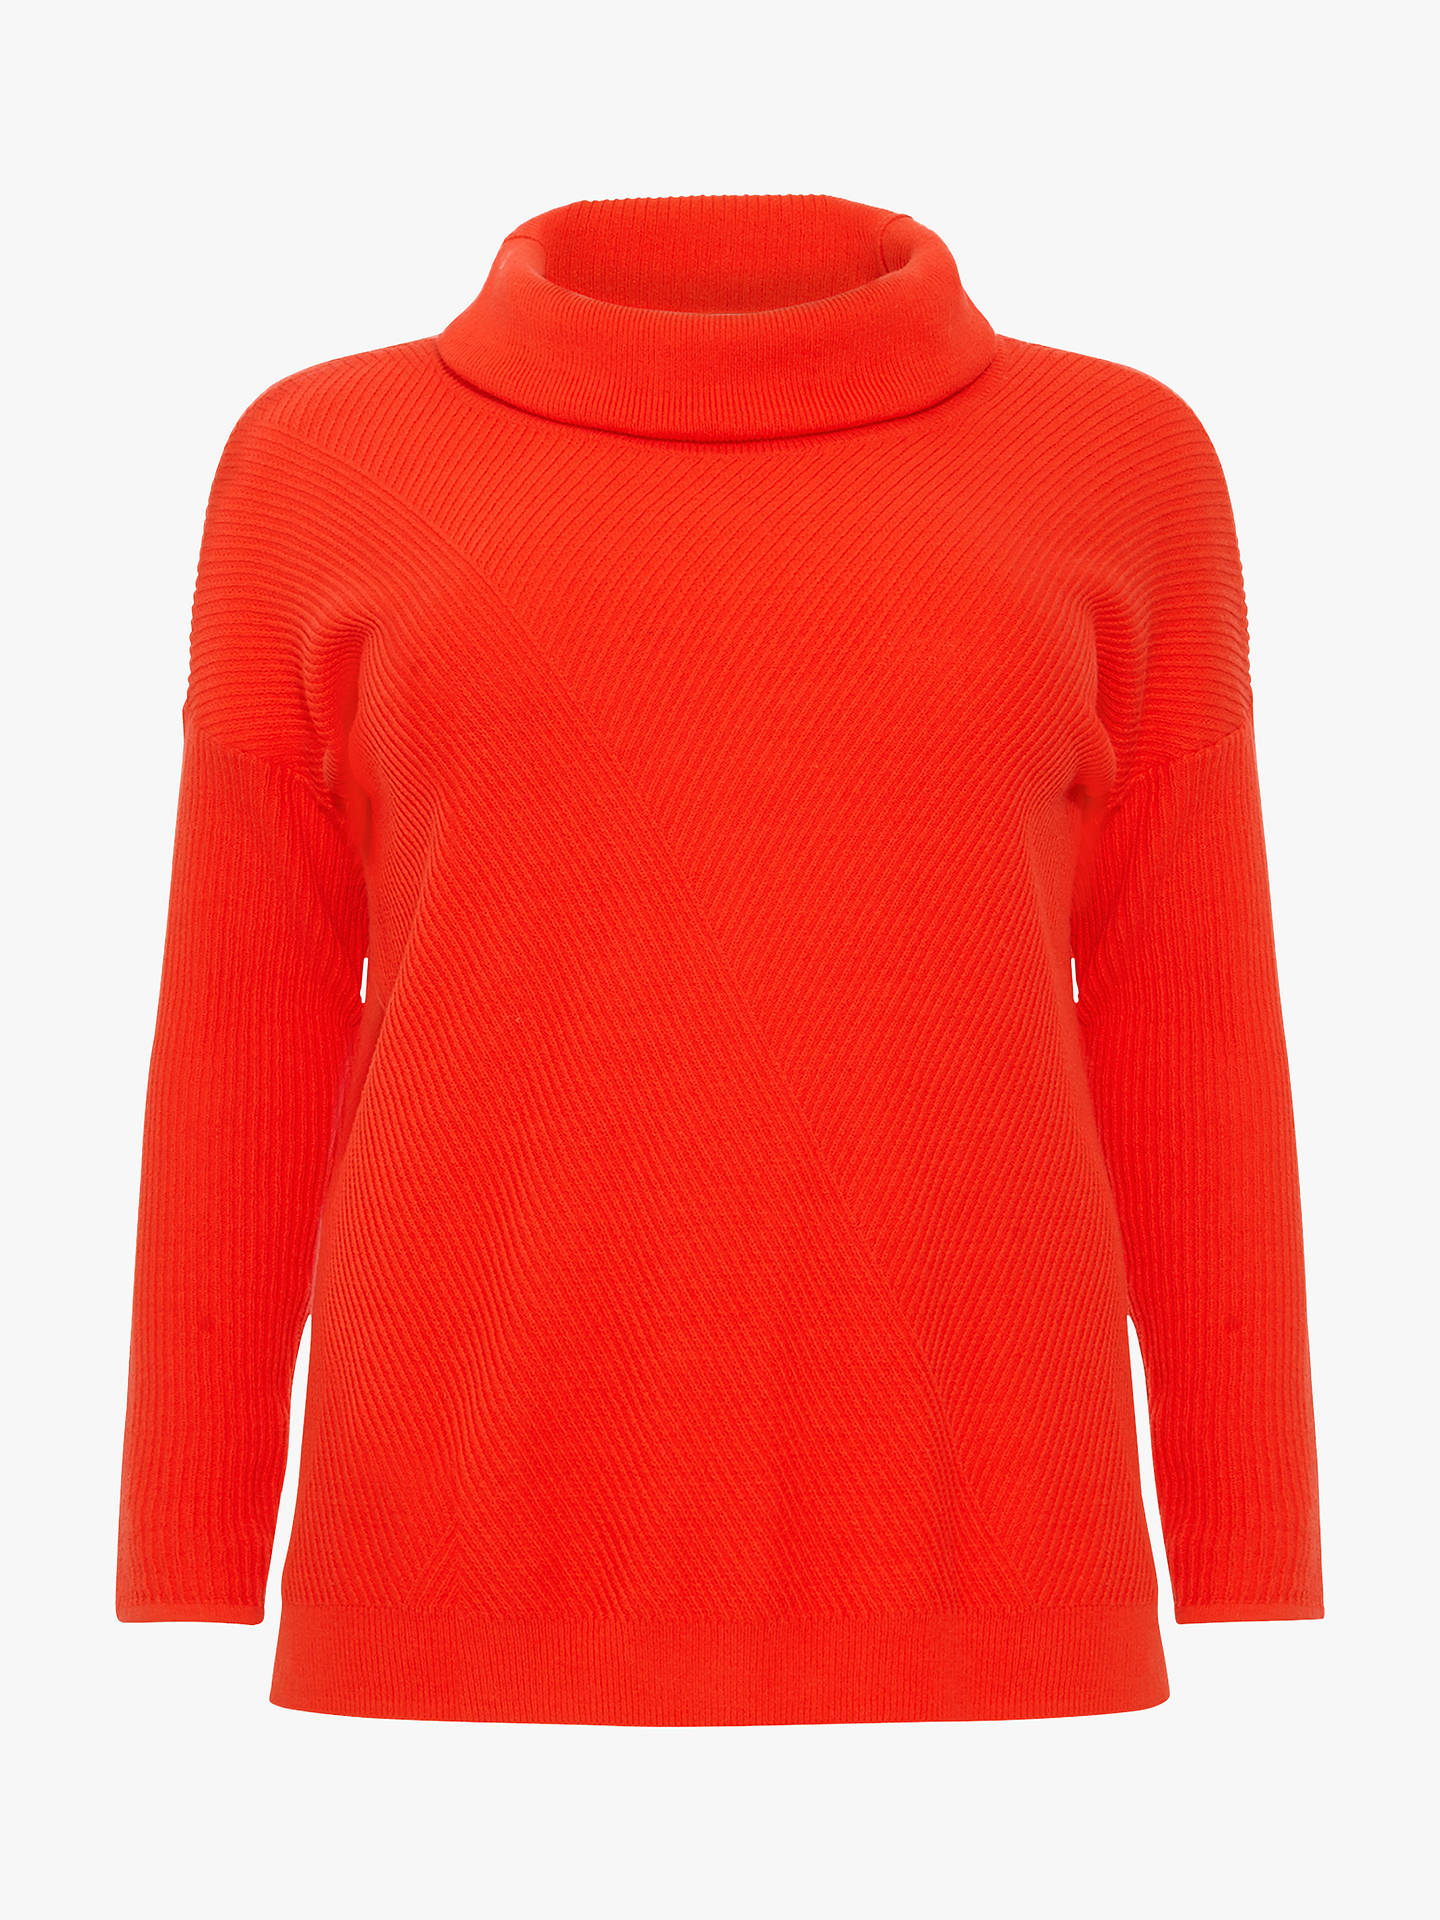 BuyStudio 8 Josie Cowl Neck Jumper, Red, 18 Online at johnlewis.com